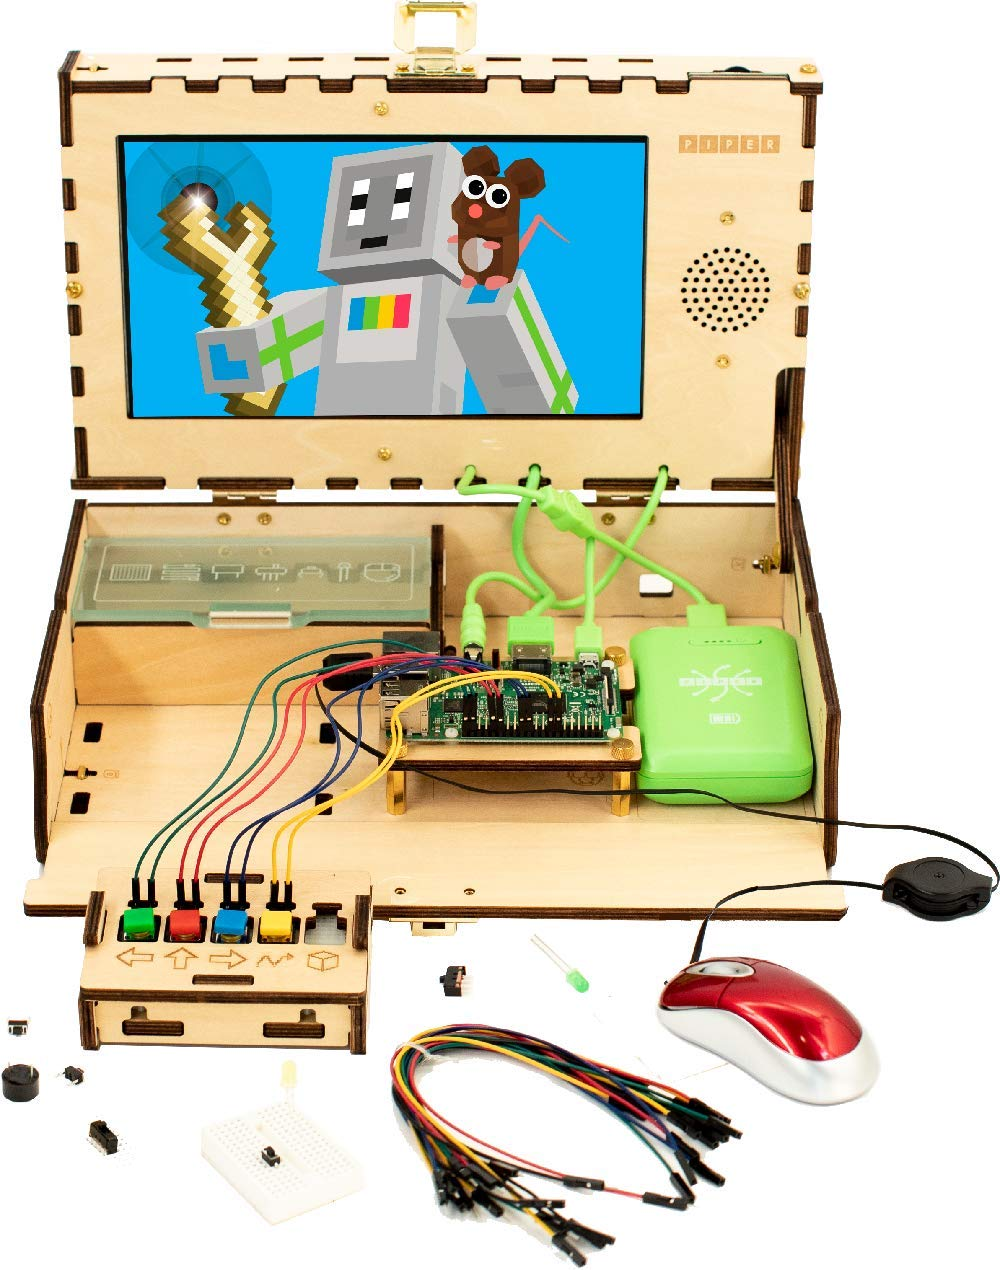 Piper Computer Kit 2 - Teach Kids to Code - Hands On STEM Learning Toy with Minecraft: Raspberry Pi (New) by Piper (Image #2)